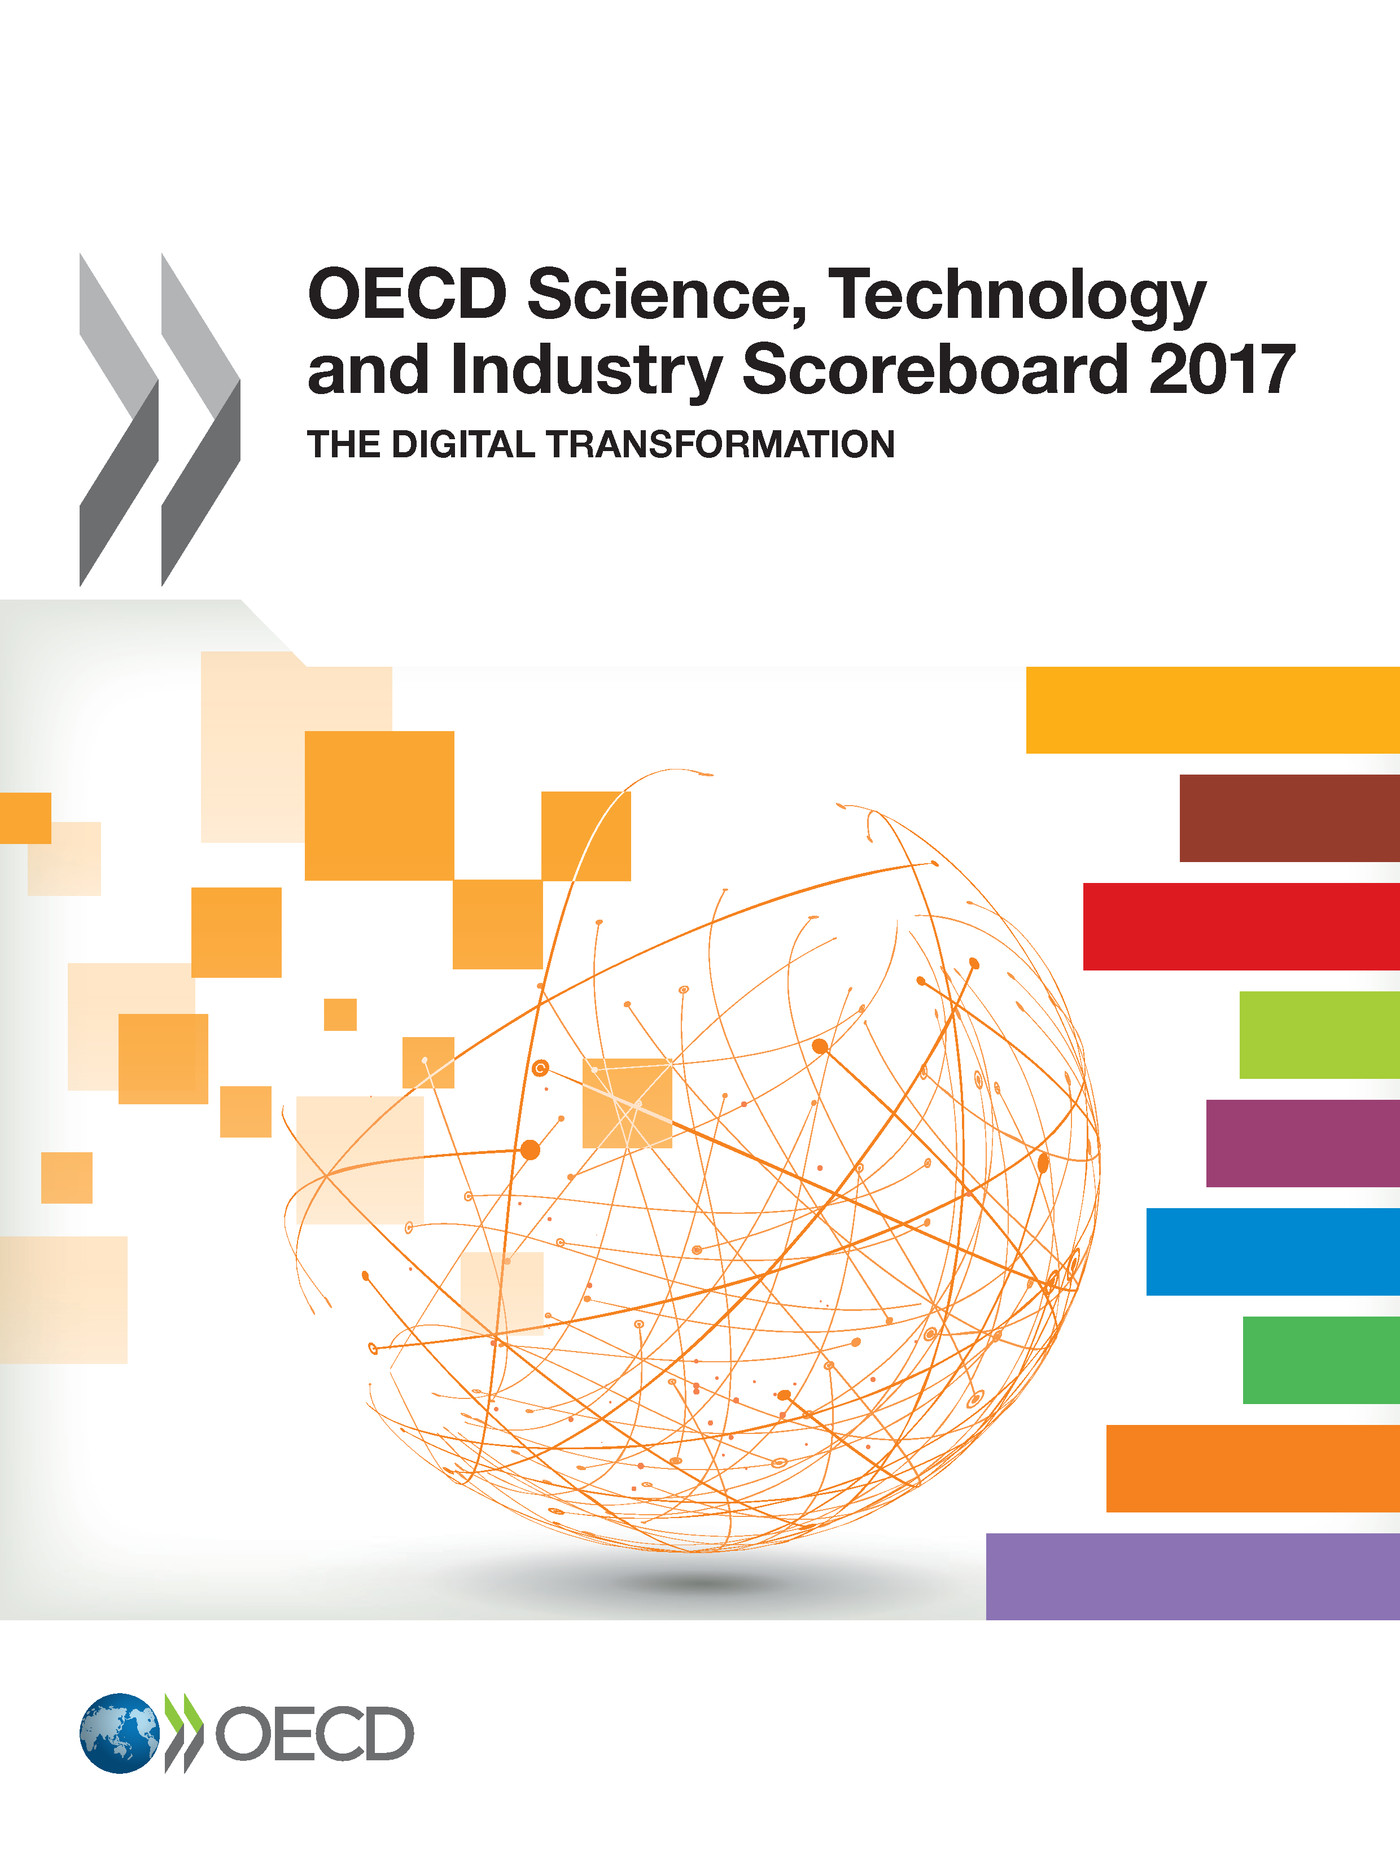 OECD Science, Technology and Industry Scoreboard 2017 De  Collectif - OCDE / OECD